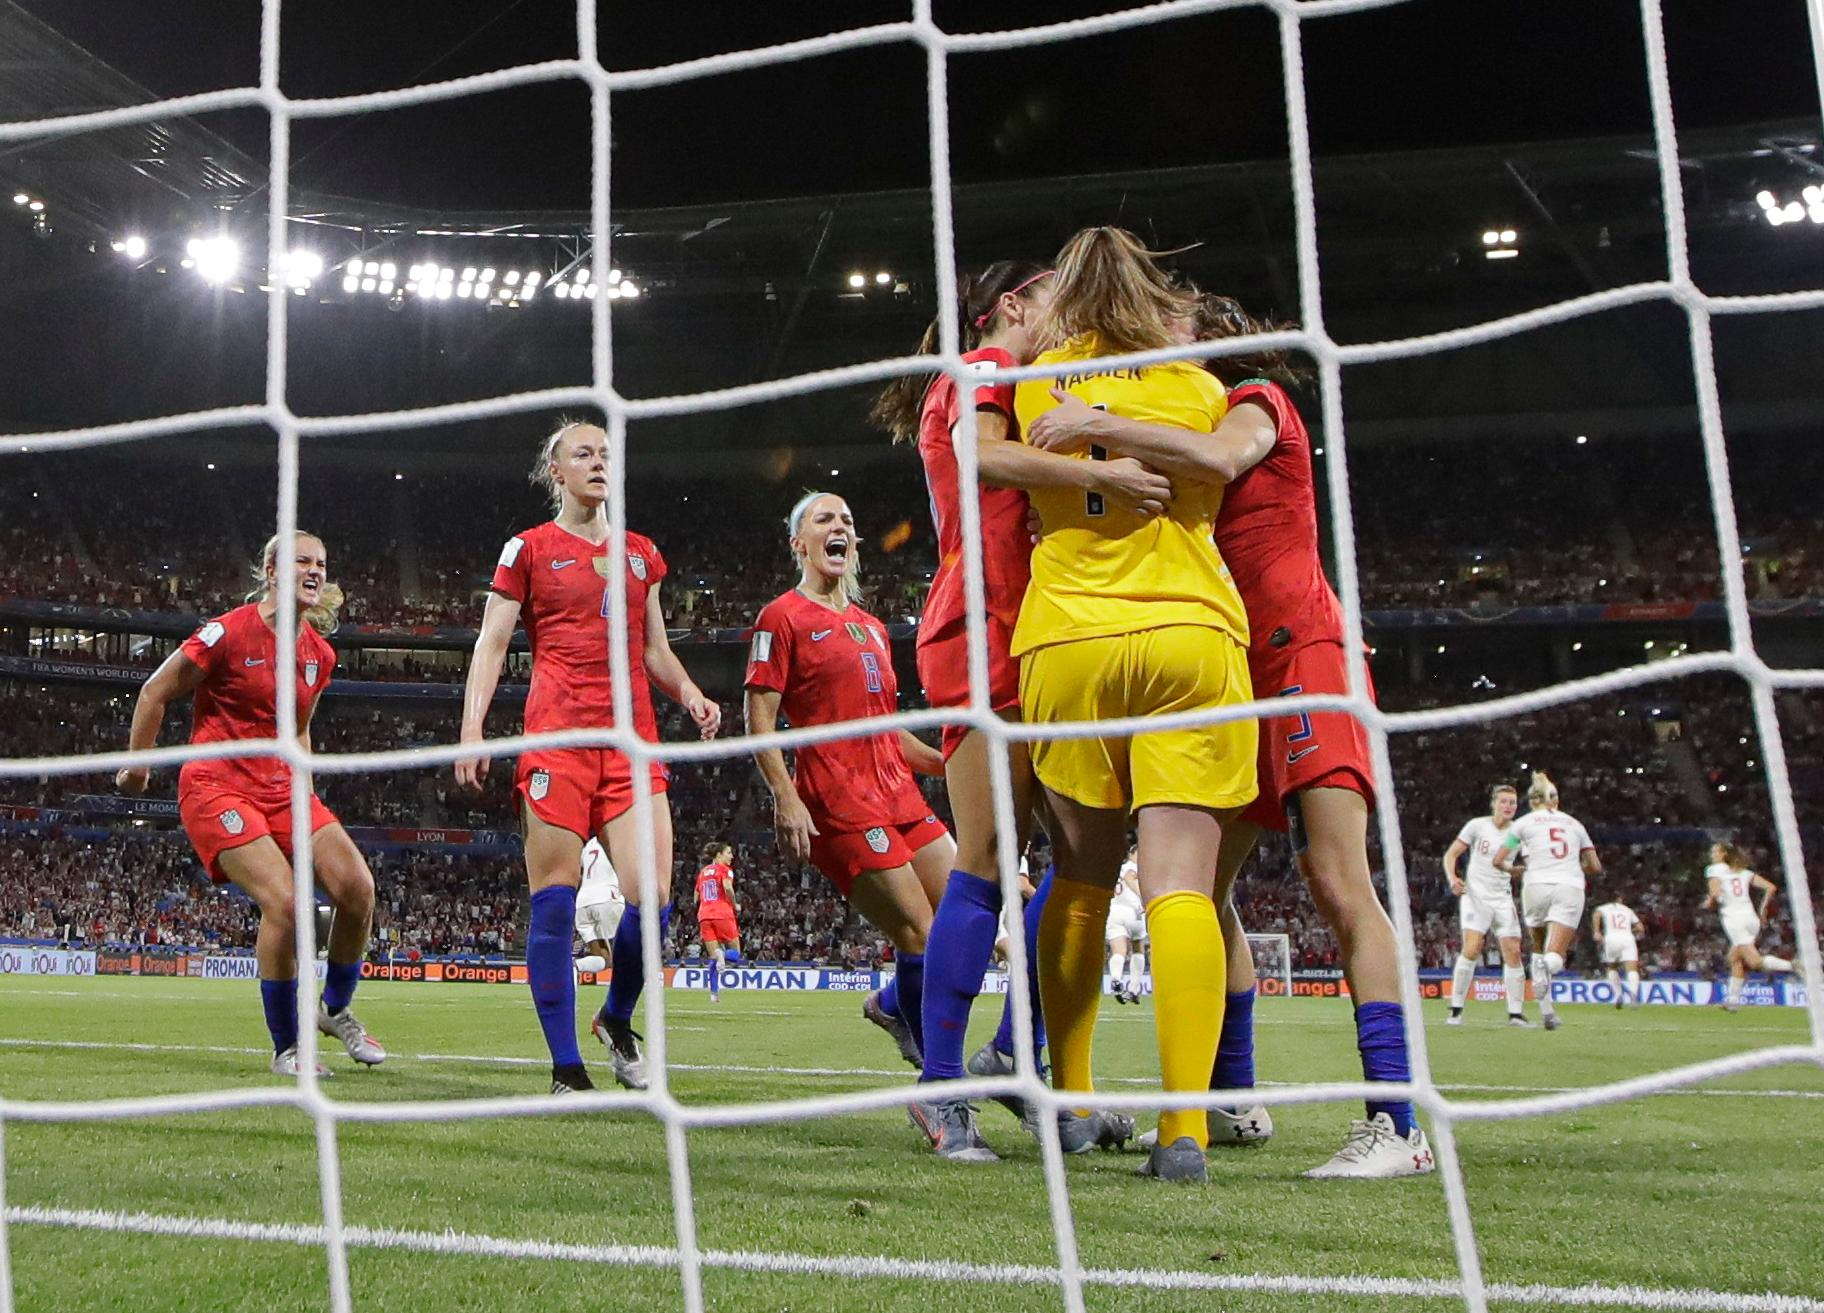 Team mates hug United States goalkeeper Alyssa Naeher after she saved a penalty shot taken by England's Steph Houghton during the Women's World Cup semifinal soccer match between England and the United States, at the Stade de Lyon, outside Lyon, France, Tuesday, July 2, 2019. (AP Photo/Alessandra Tarantino)